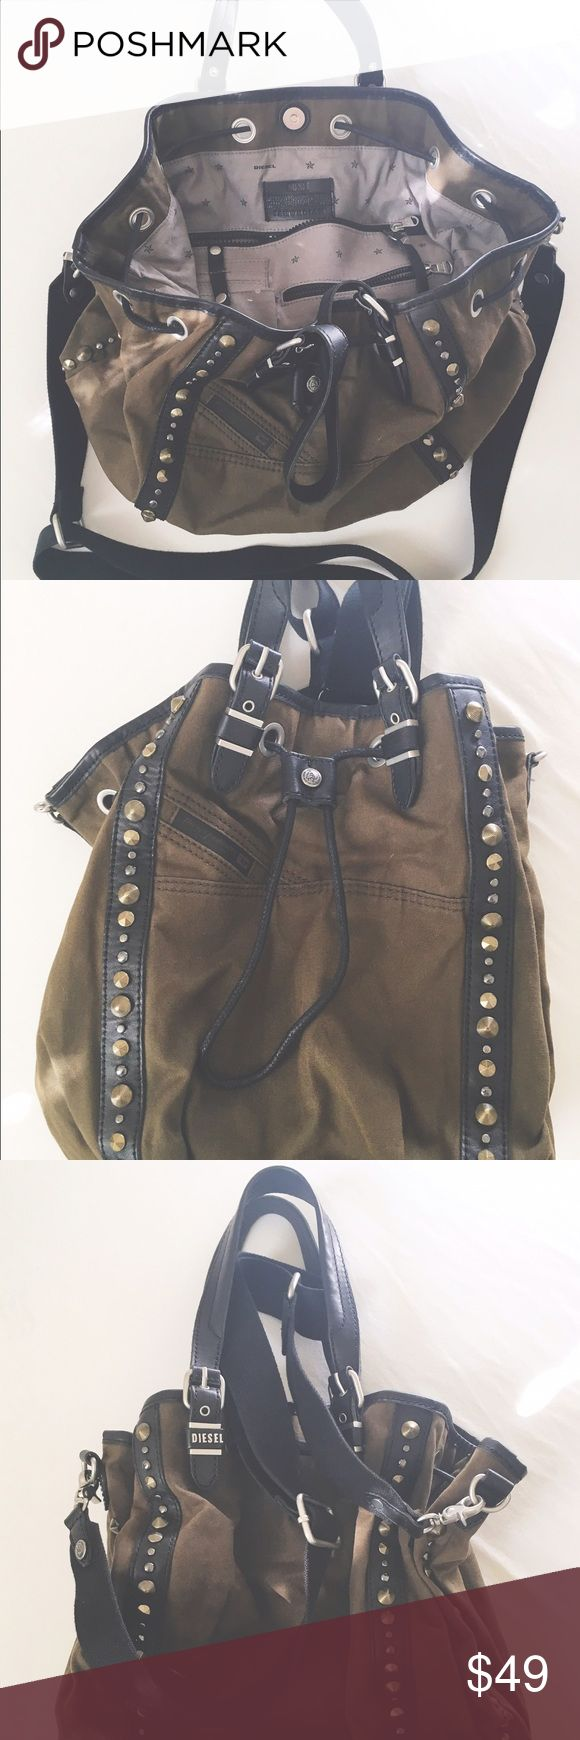 Great Diesel bag dark green in perfect condition Great bag material with leather stripes Diesel Bags Shoulder Bags